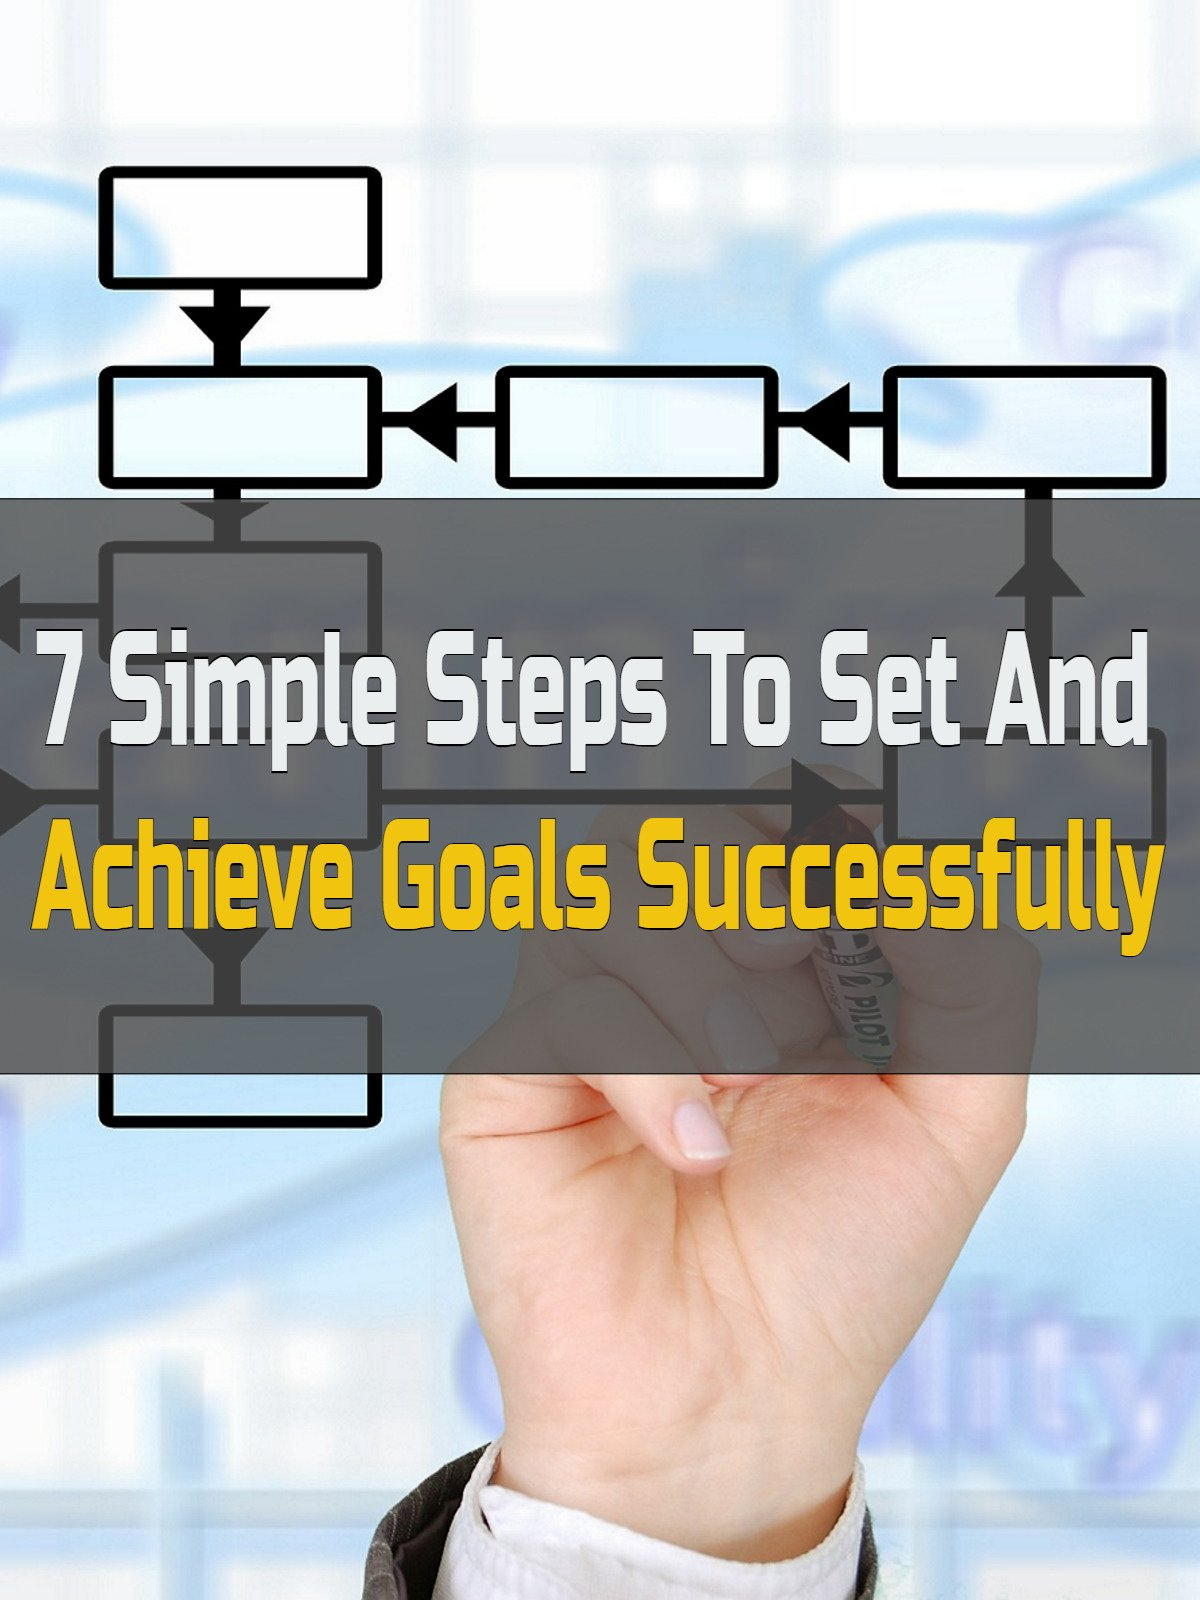 7 Simple Steps To Set and Achieve Goals Successfully